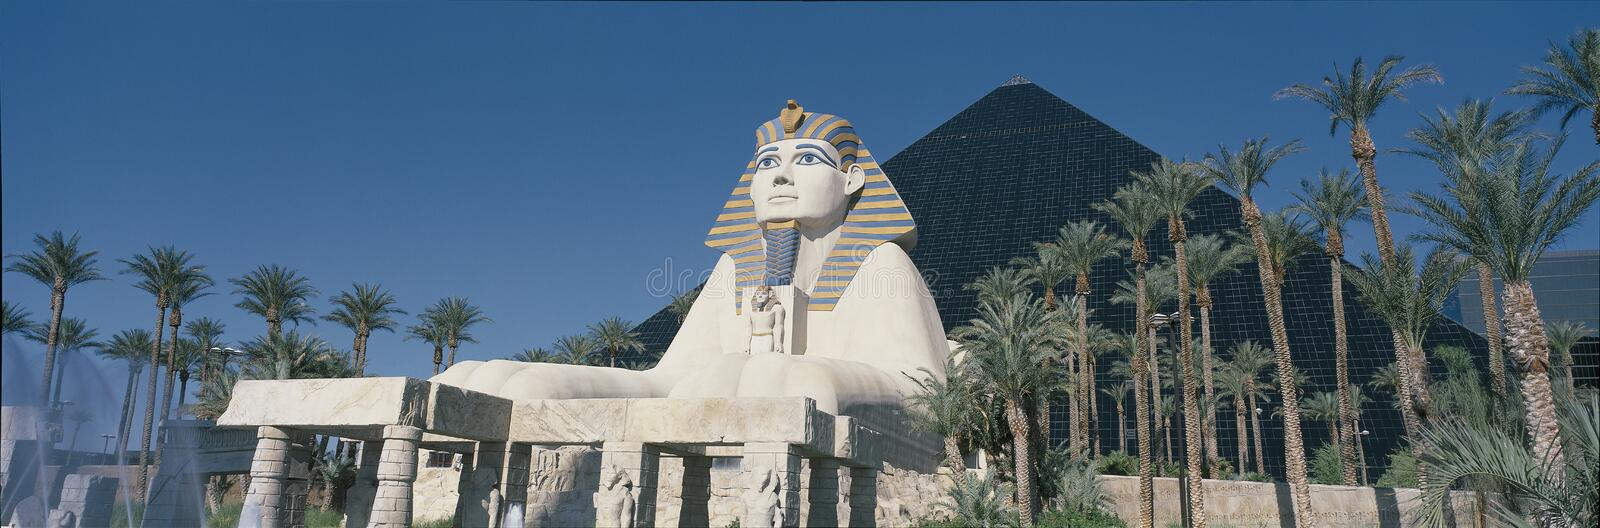 This is the Luxor Hotel during the day. It shows a replica of the Great Pyramid and Sphinx of Egypt royalty free stock photography